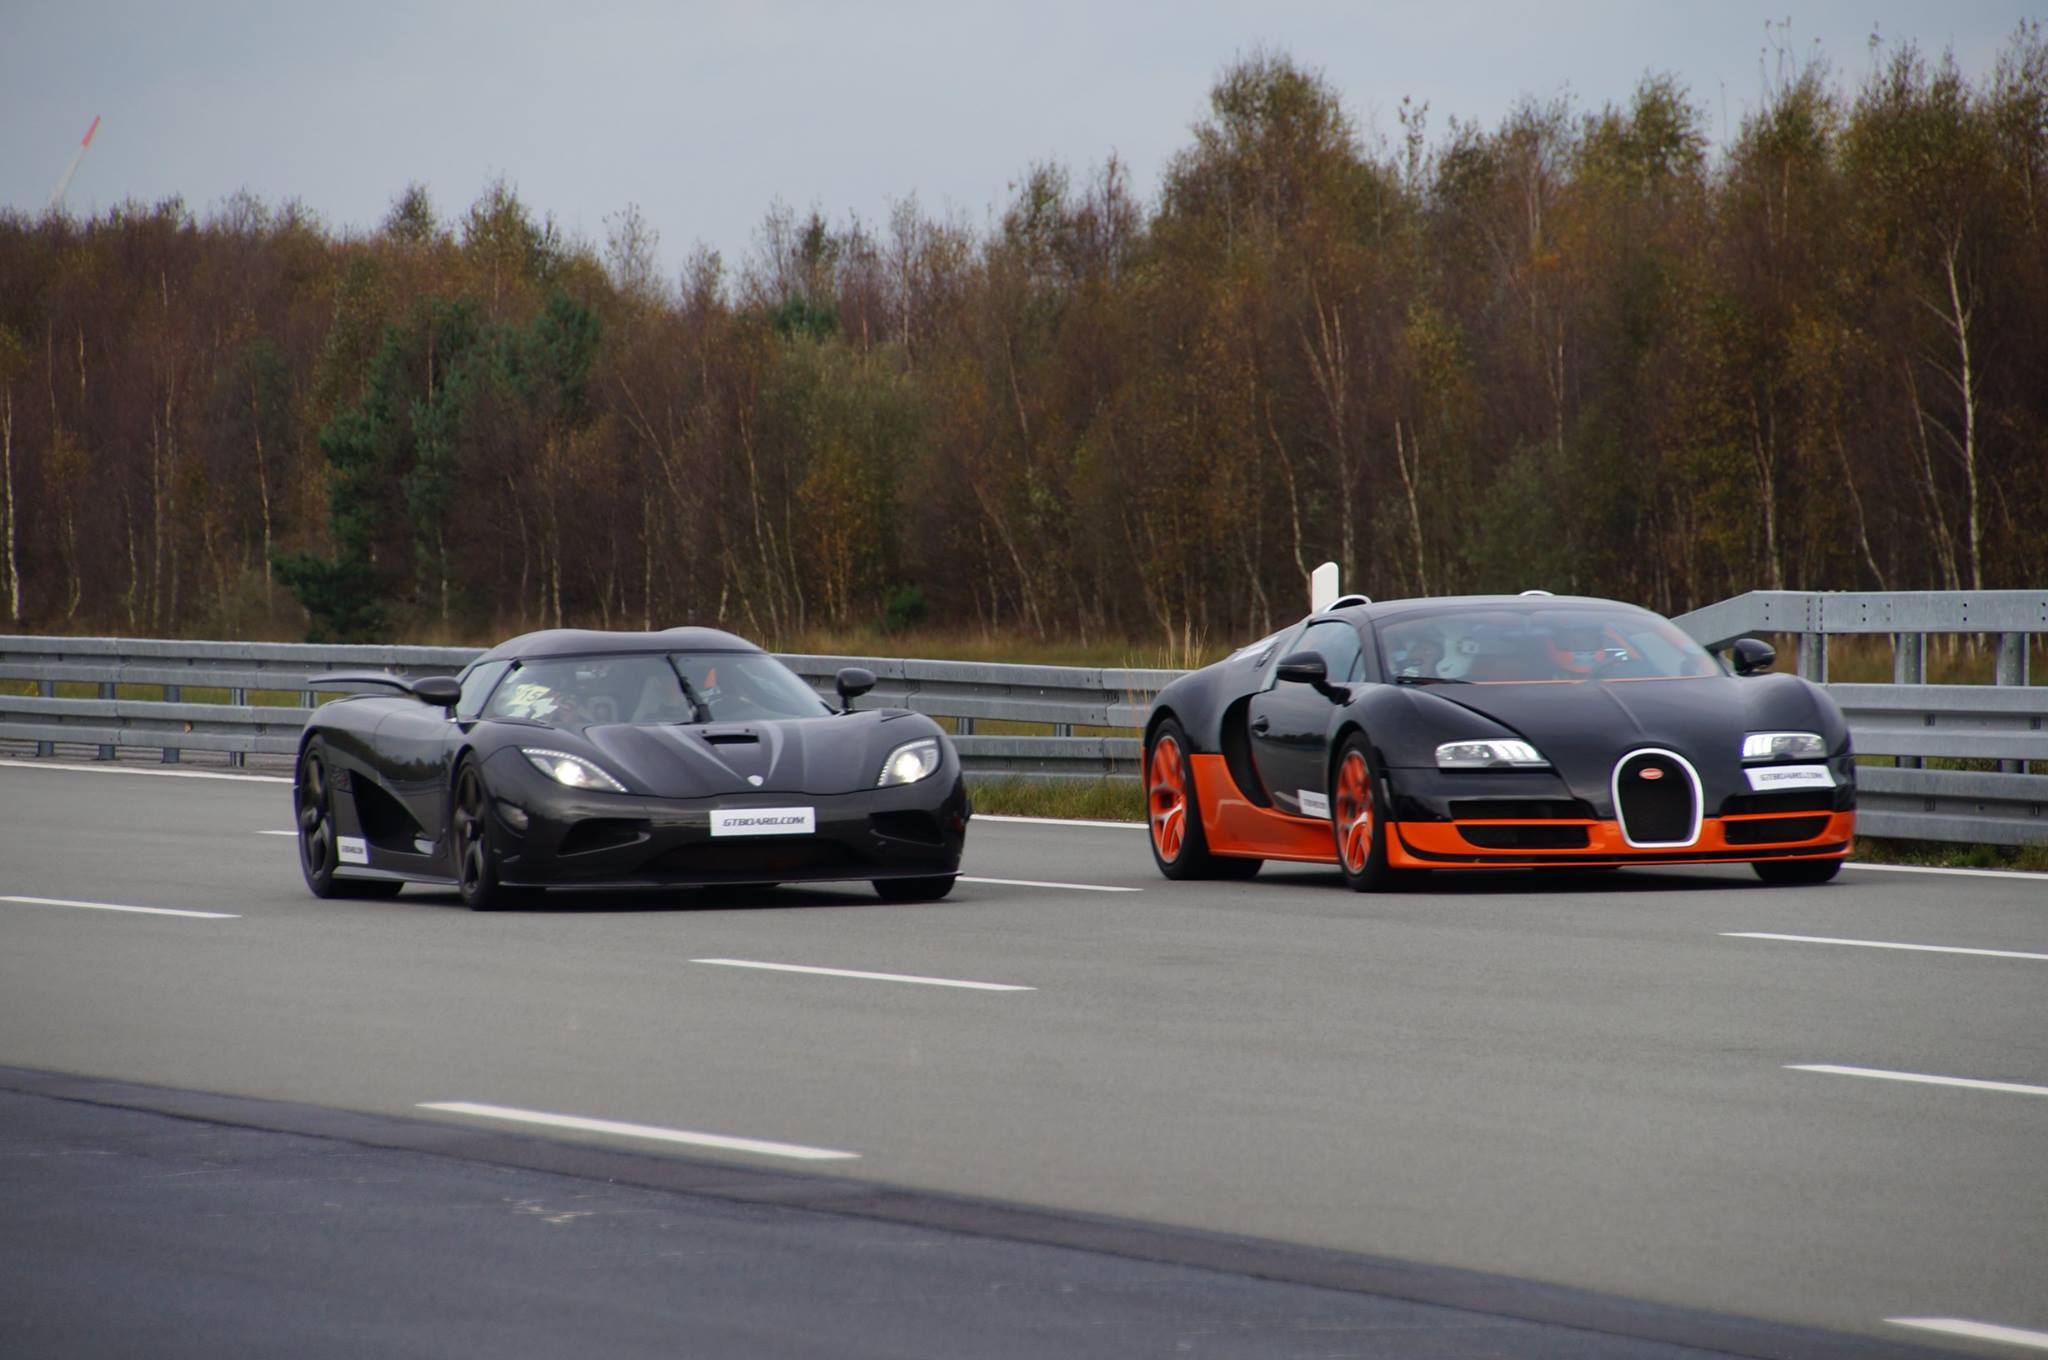 Video: Koenigsegg Agera R vs Bugatti Veyron Vitesse Race ...